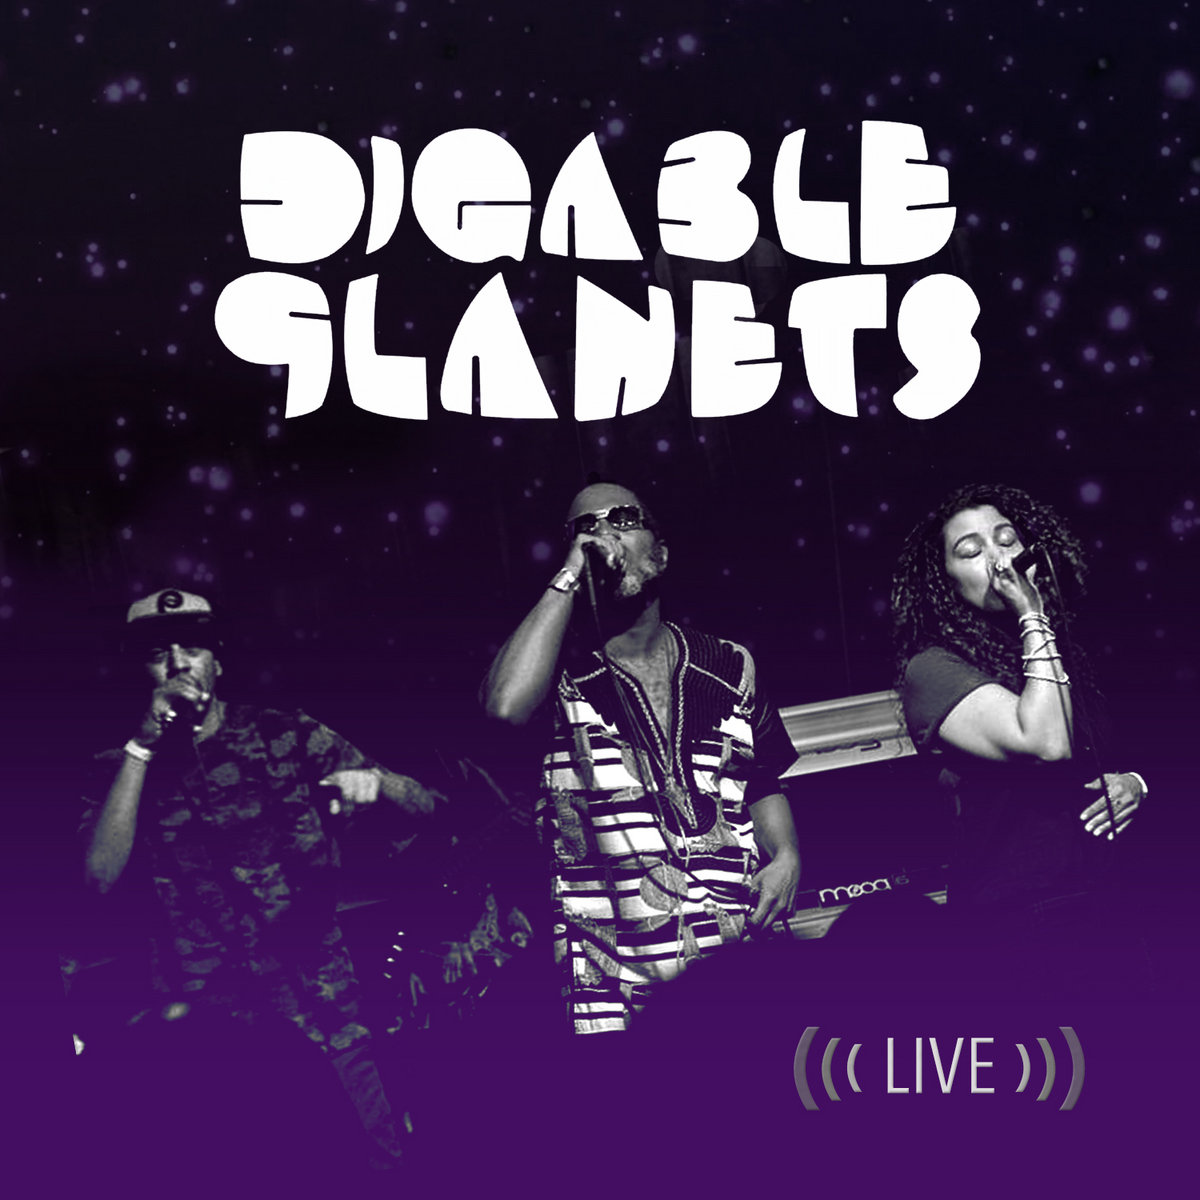 Digable Planets Live | Digable Planets